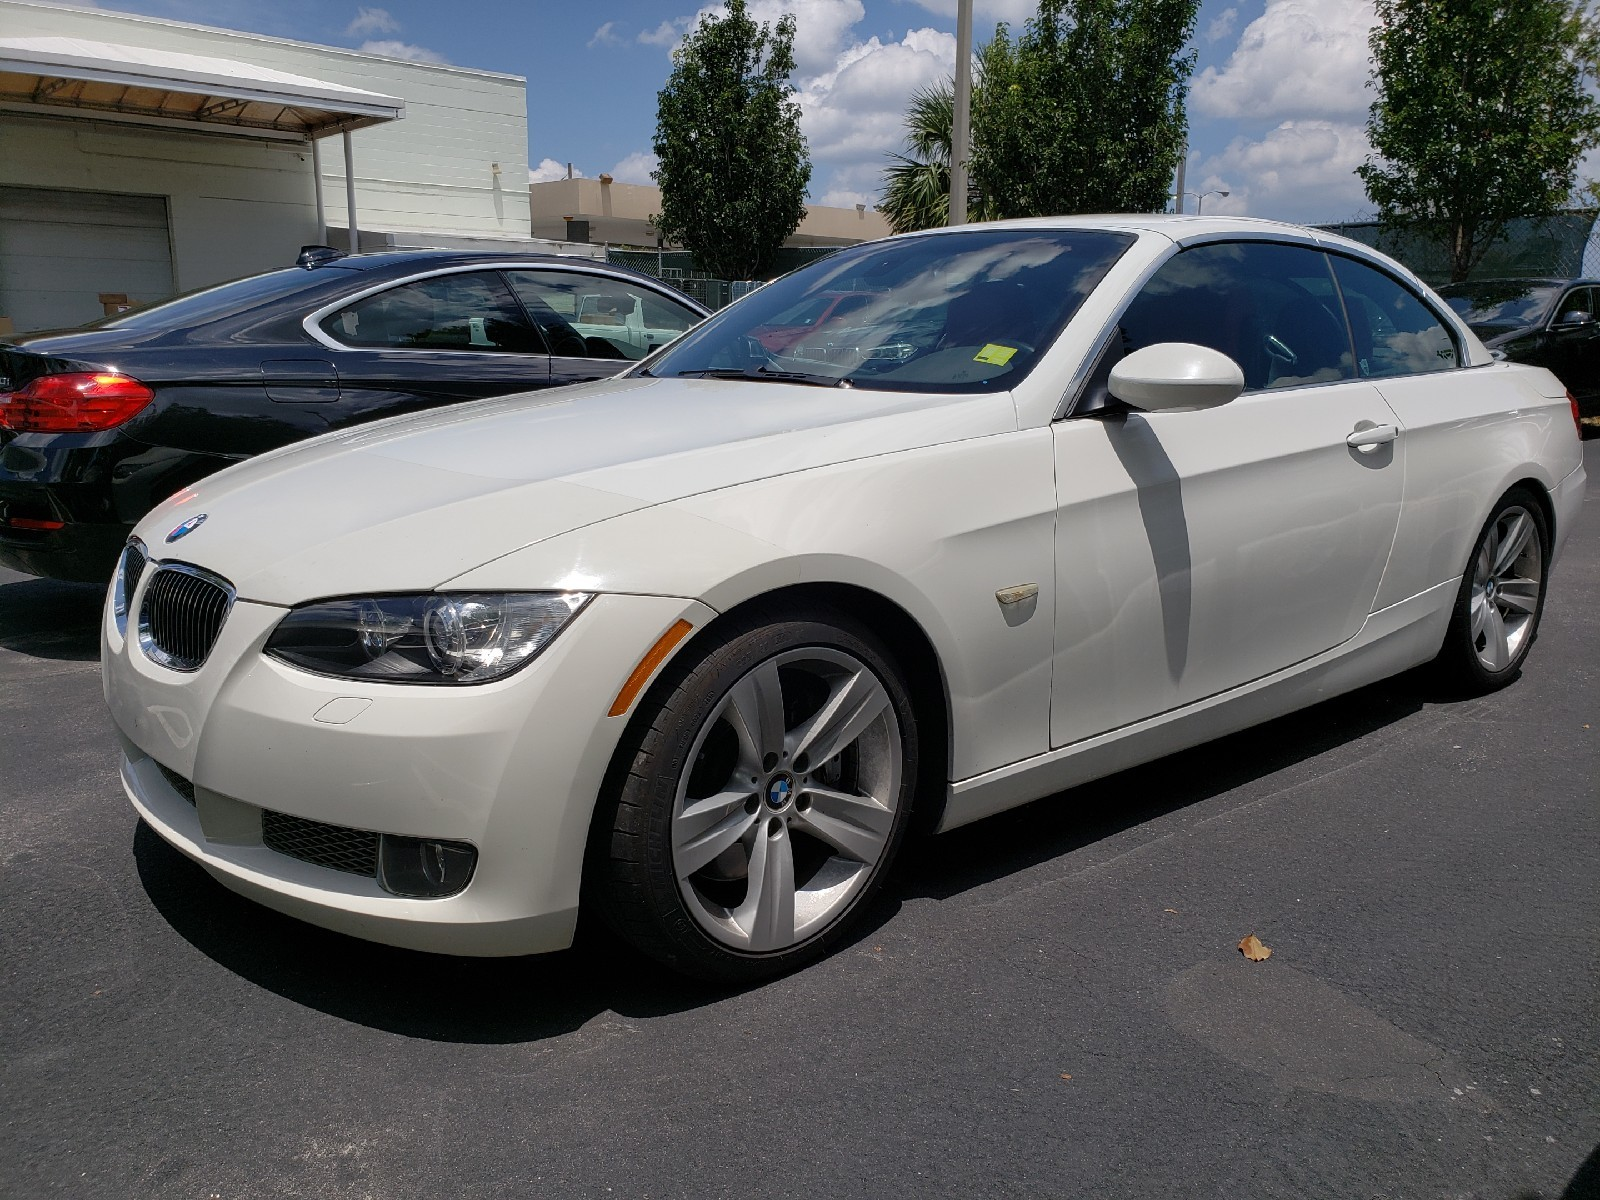 2008 Used BMW 335i For Sale in Jacksonville FL A